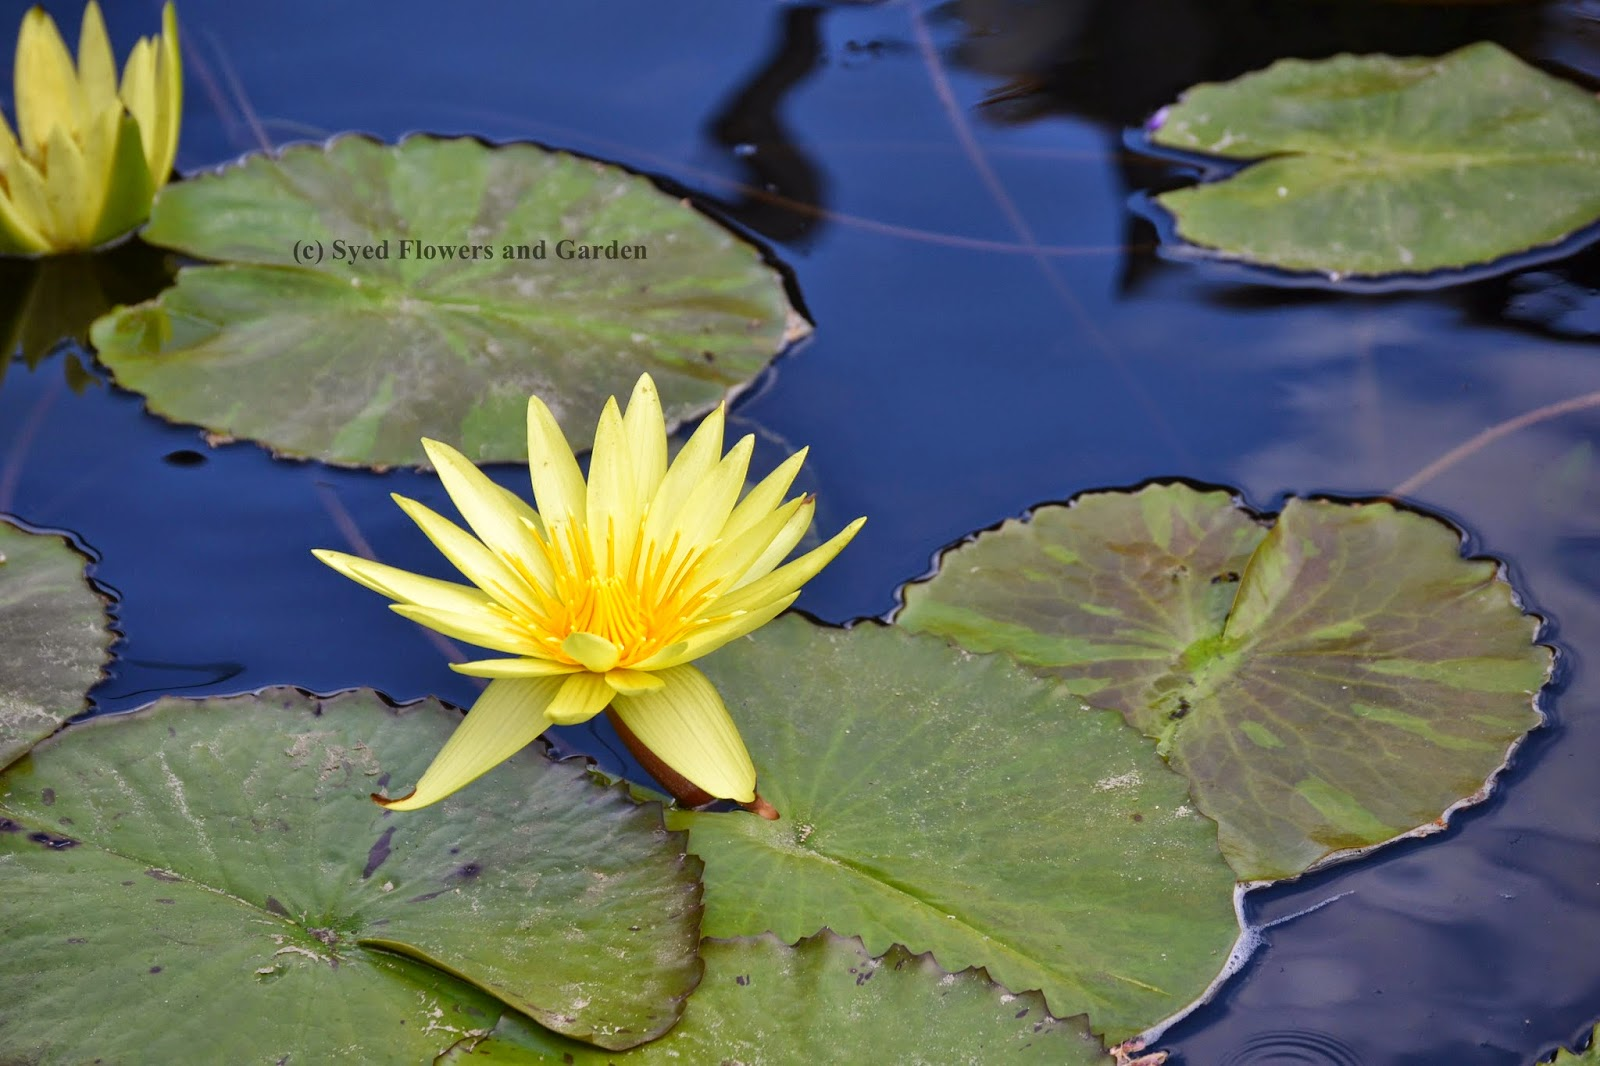 How to grow water lilies or aquatic plants nymphaeaceae flower water lilies are easy to grow water lilies grow well in small to medium pools lilies plants have adapted to living in a total water environment izmirmasajfo Gallery